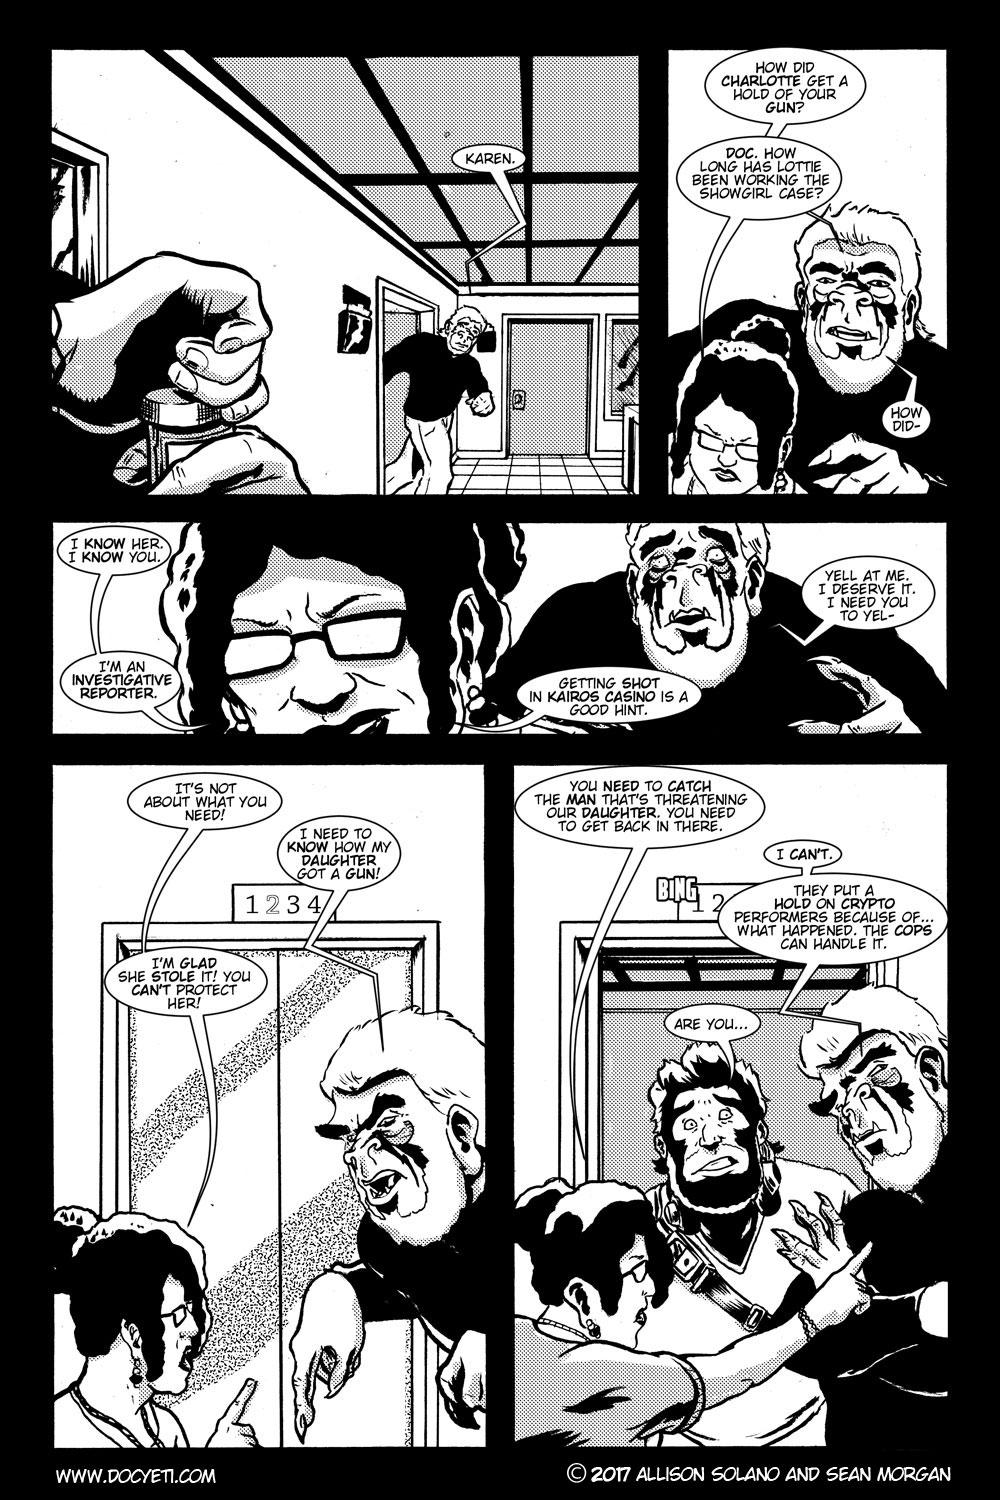 This Yeti for Hire! or the Yeti with the Lace Kerchief! Issue 3 pg.04